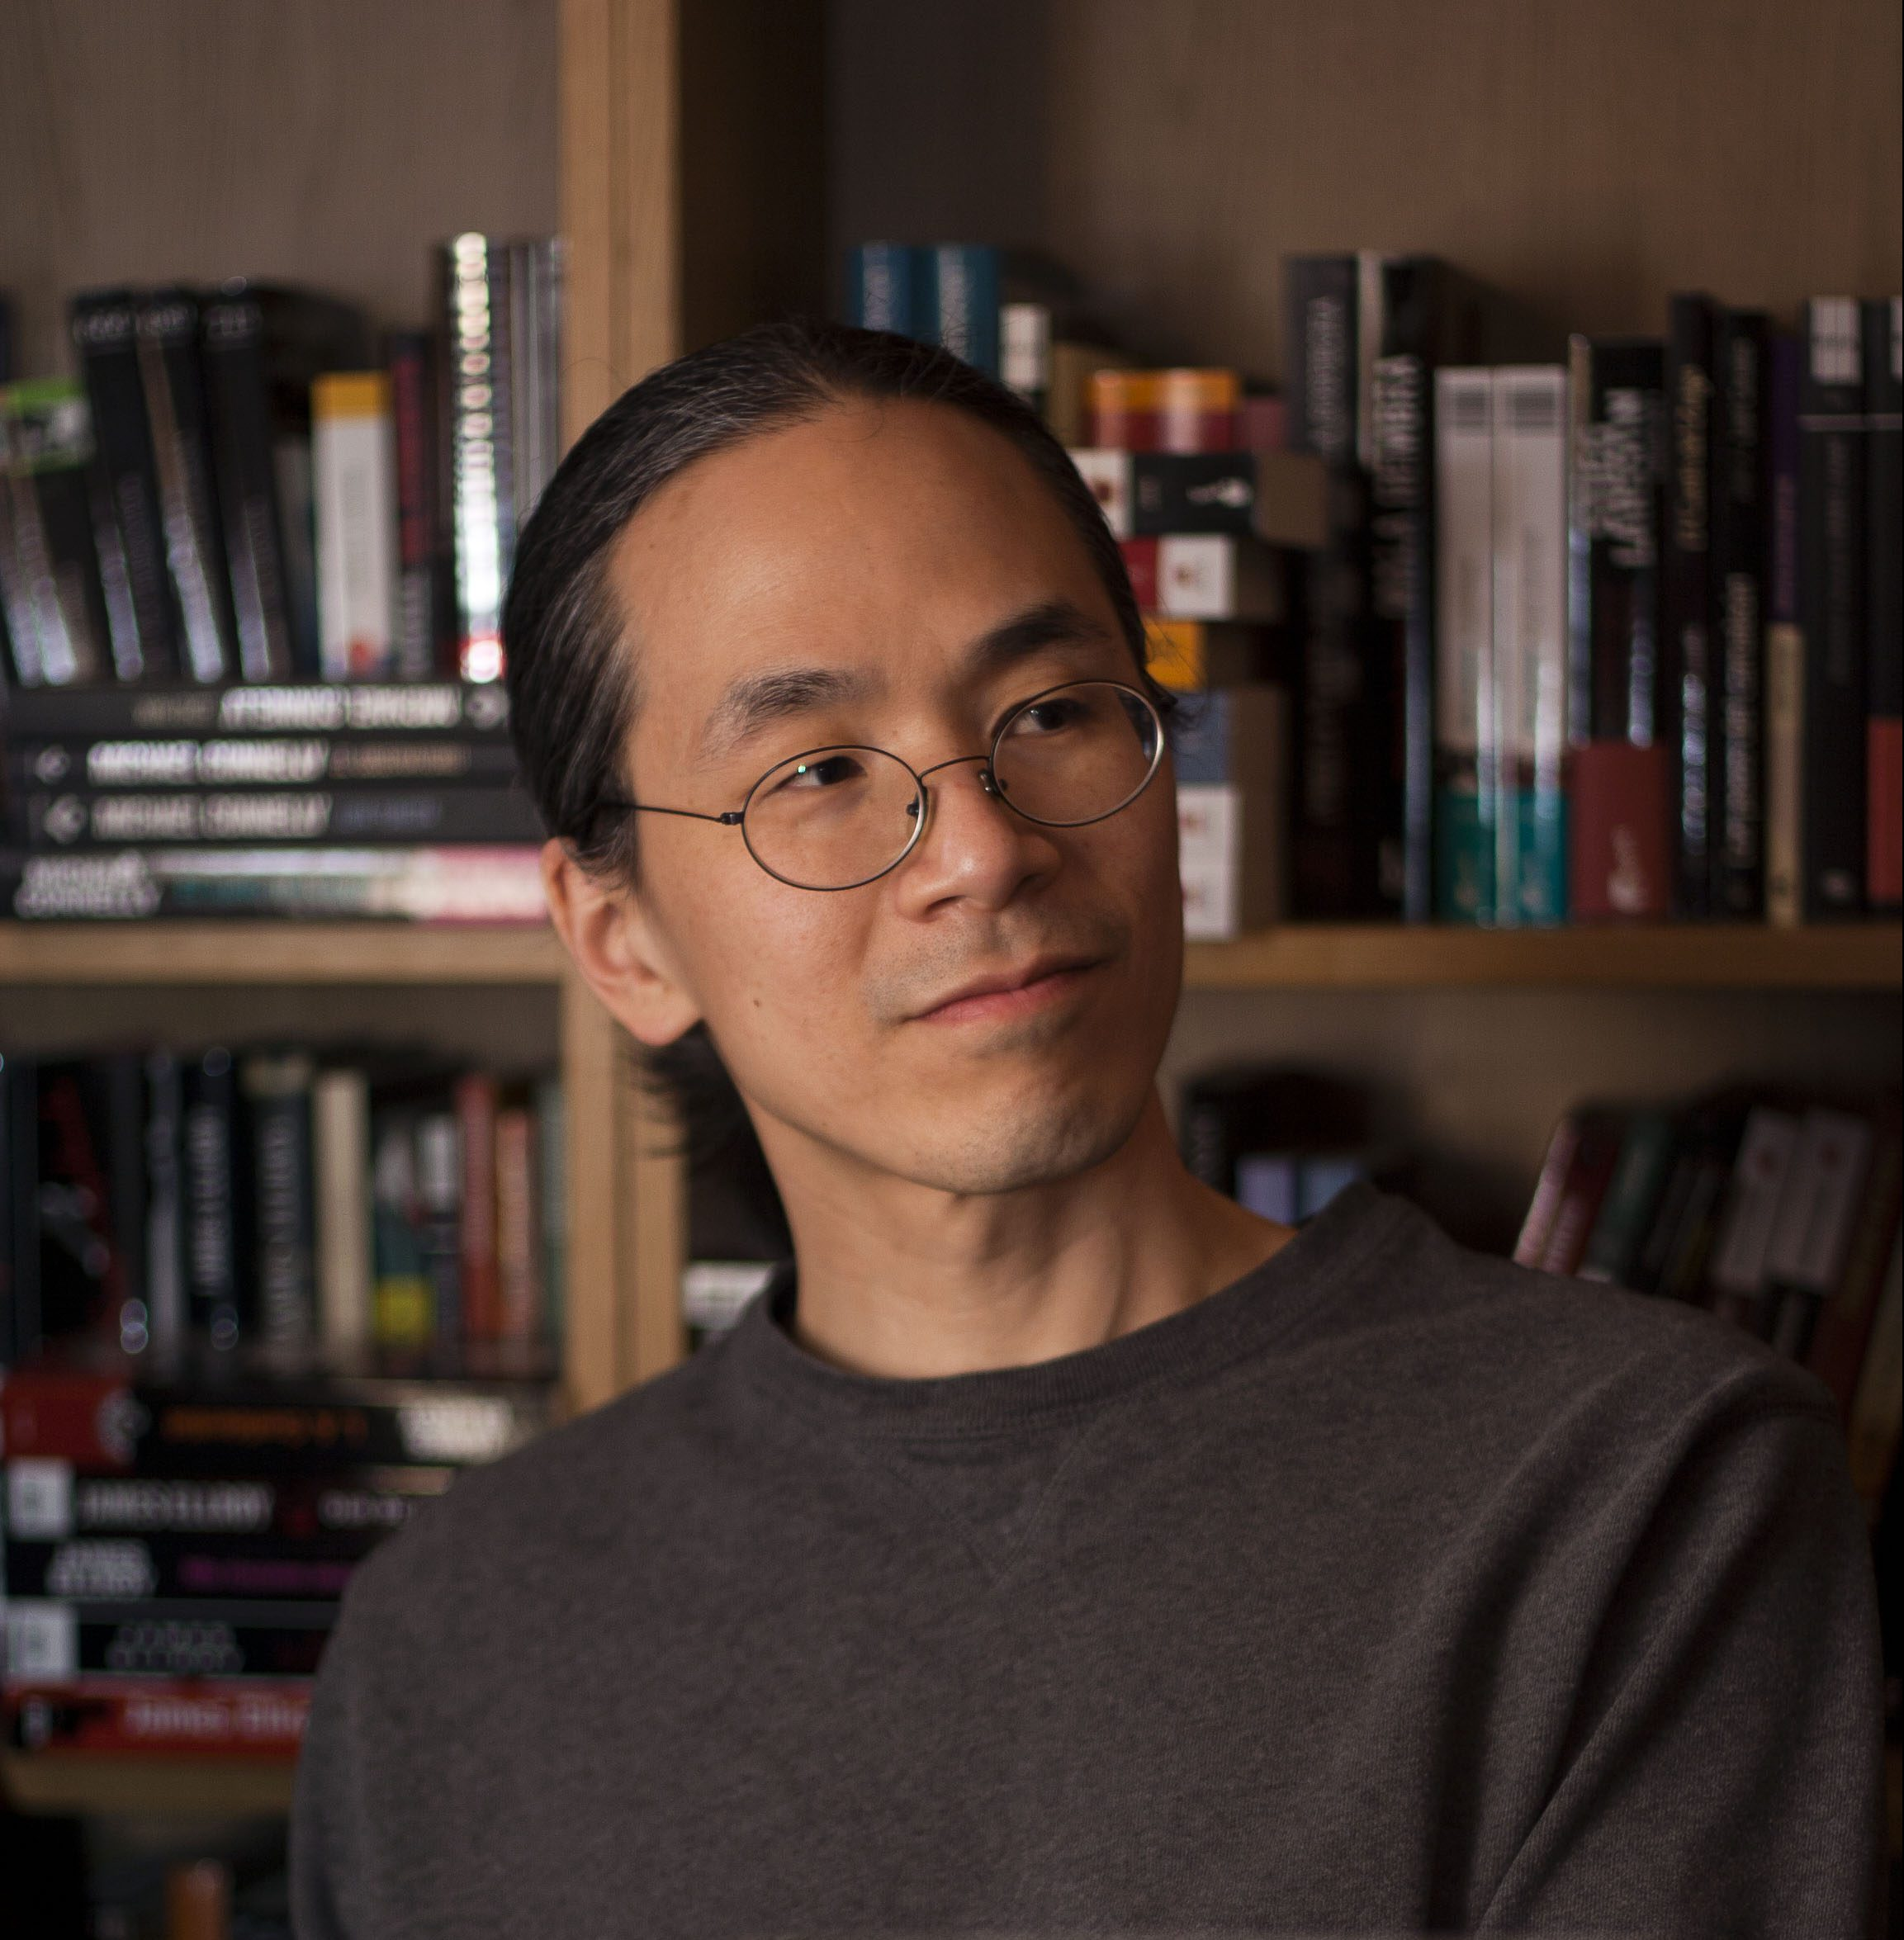 A photograph of author Ted Chiang.